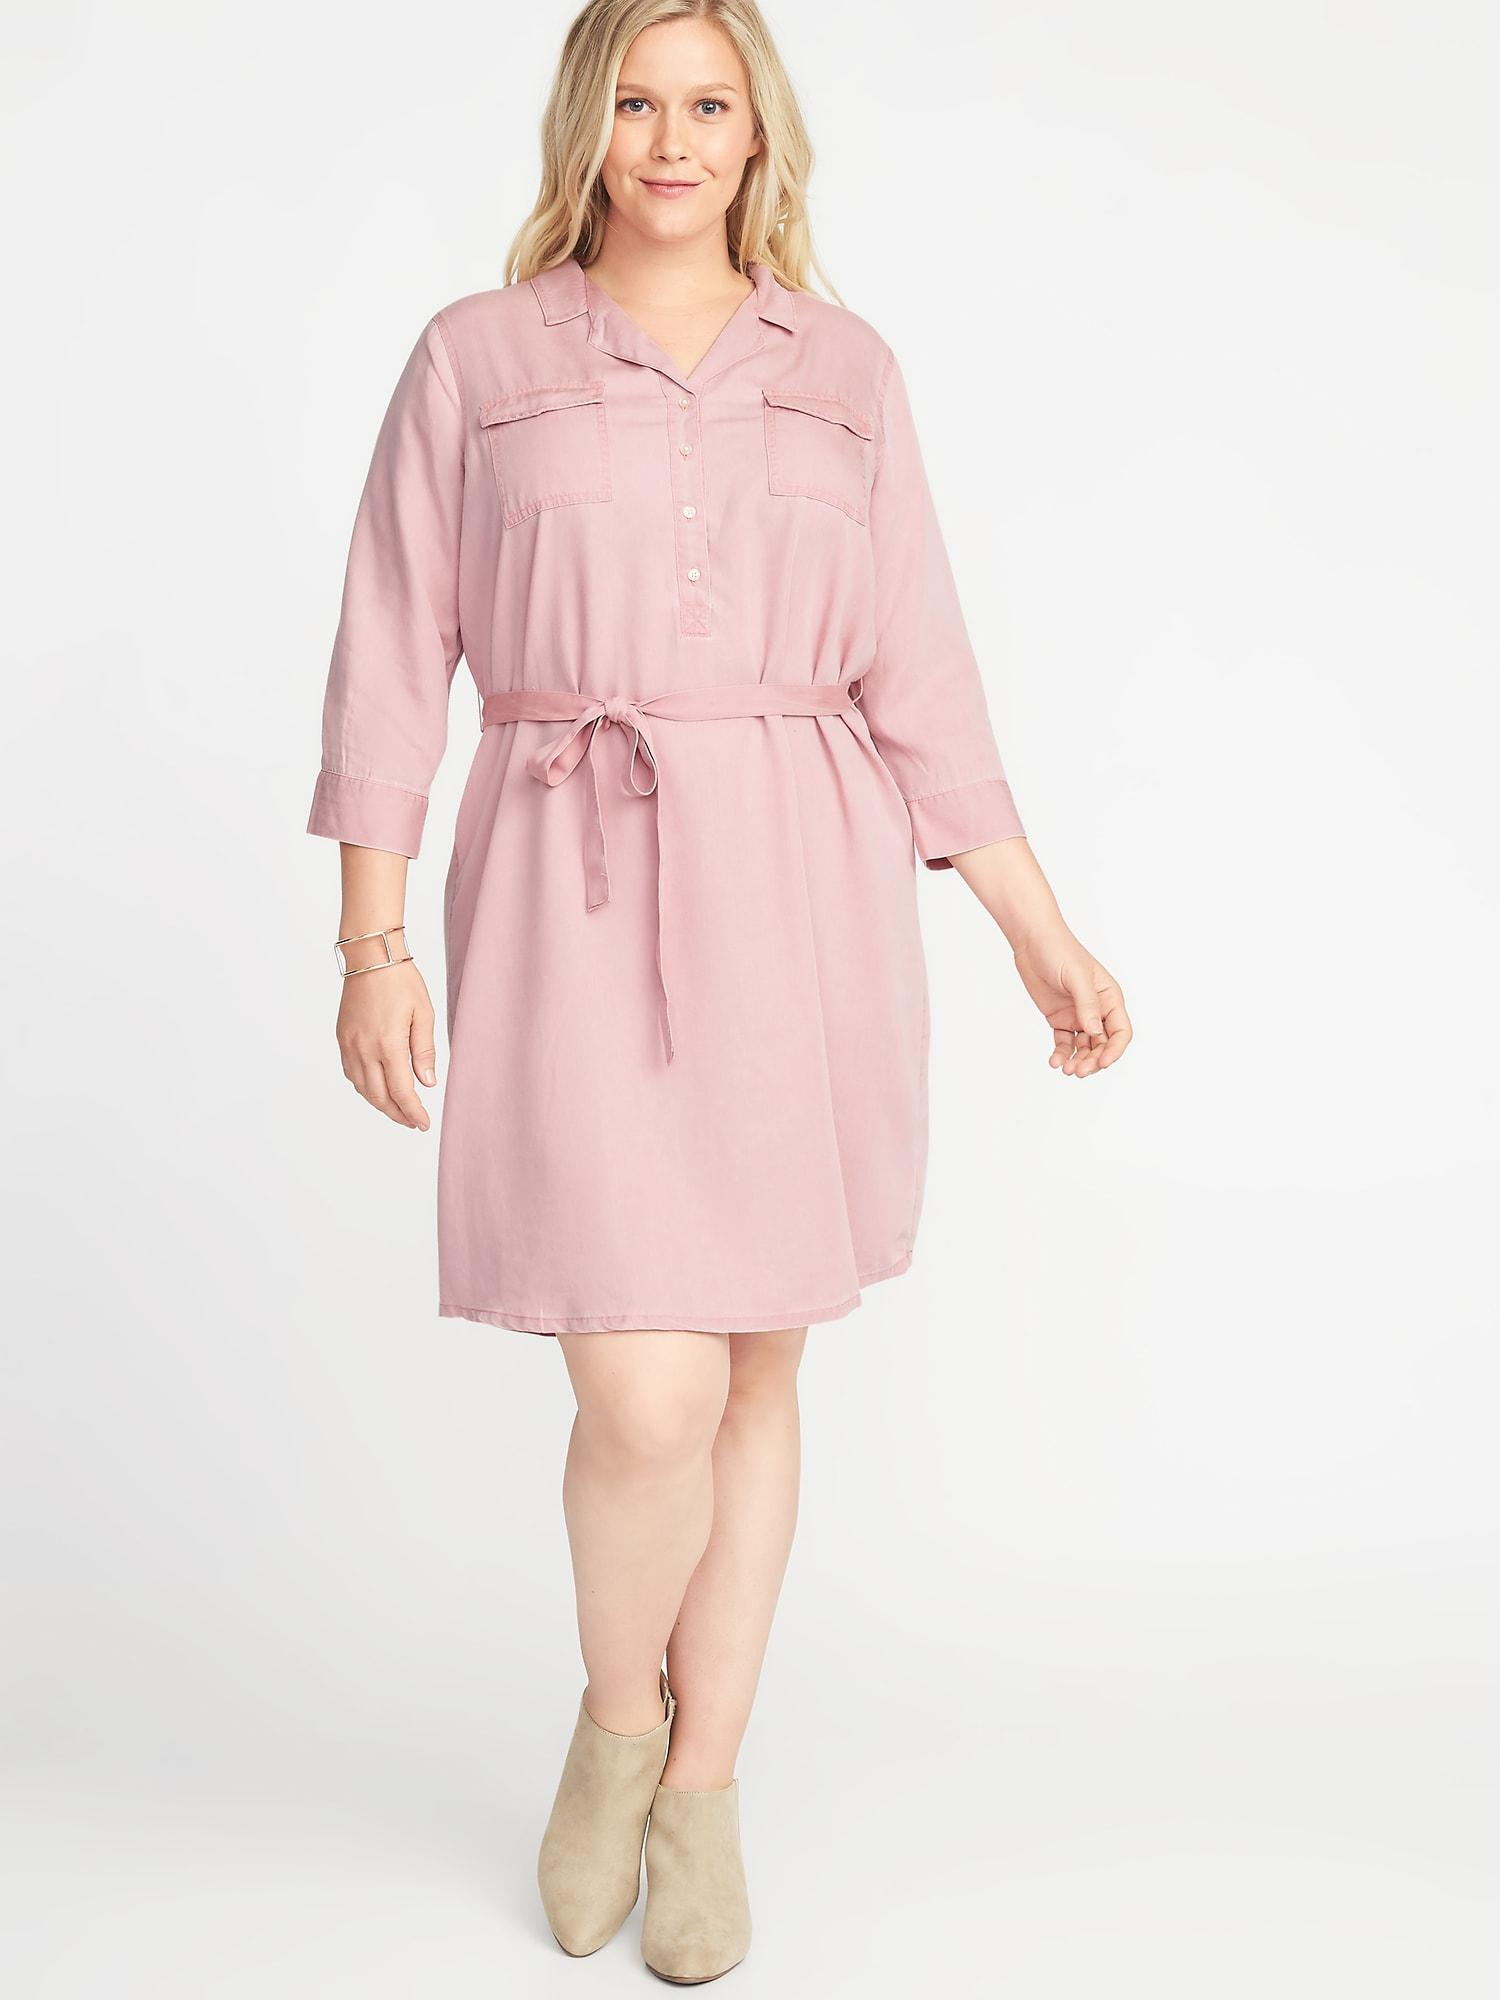 Old Navy Plus-size Tie-belt Utility Shirt Dress in Pink - Lyst